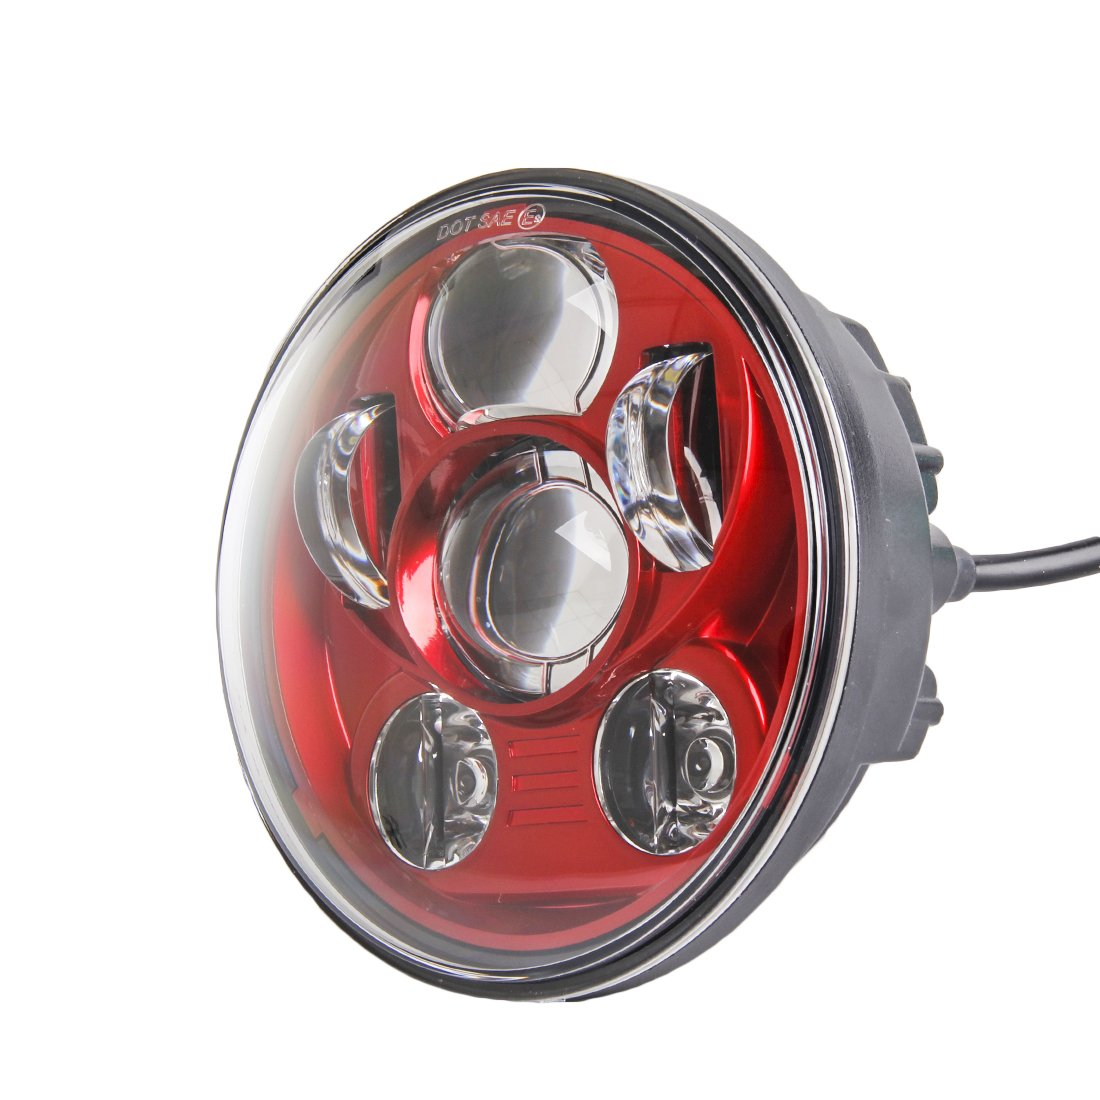 SKTYANTS Red 5-3/4 5 75 inch Motorcycle Projector LED